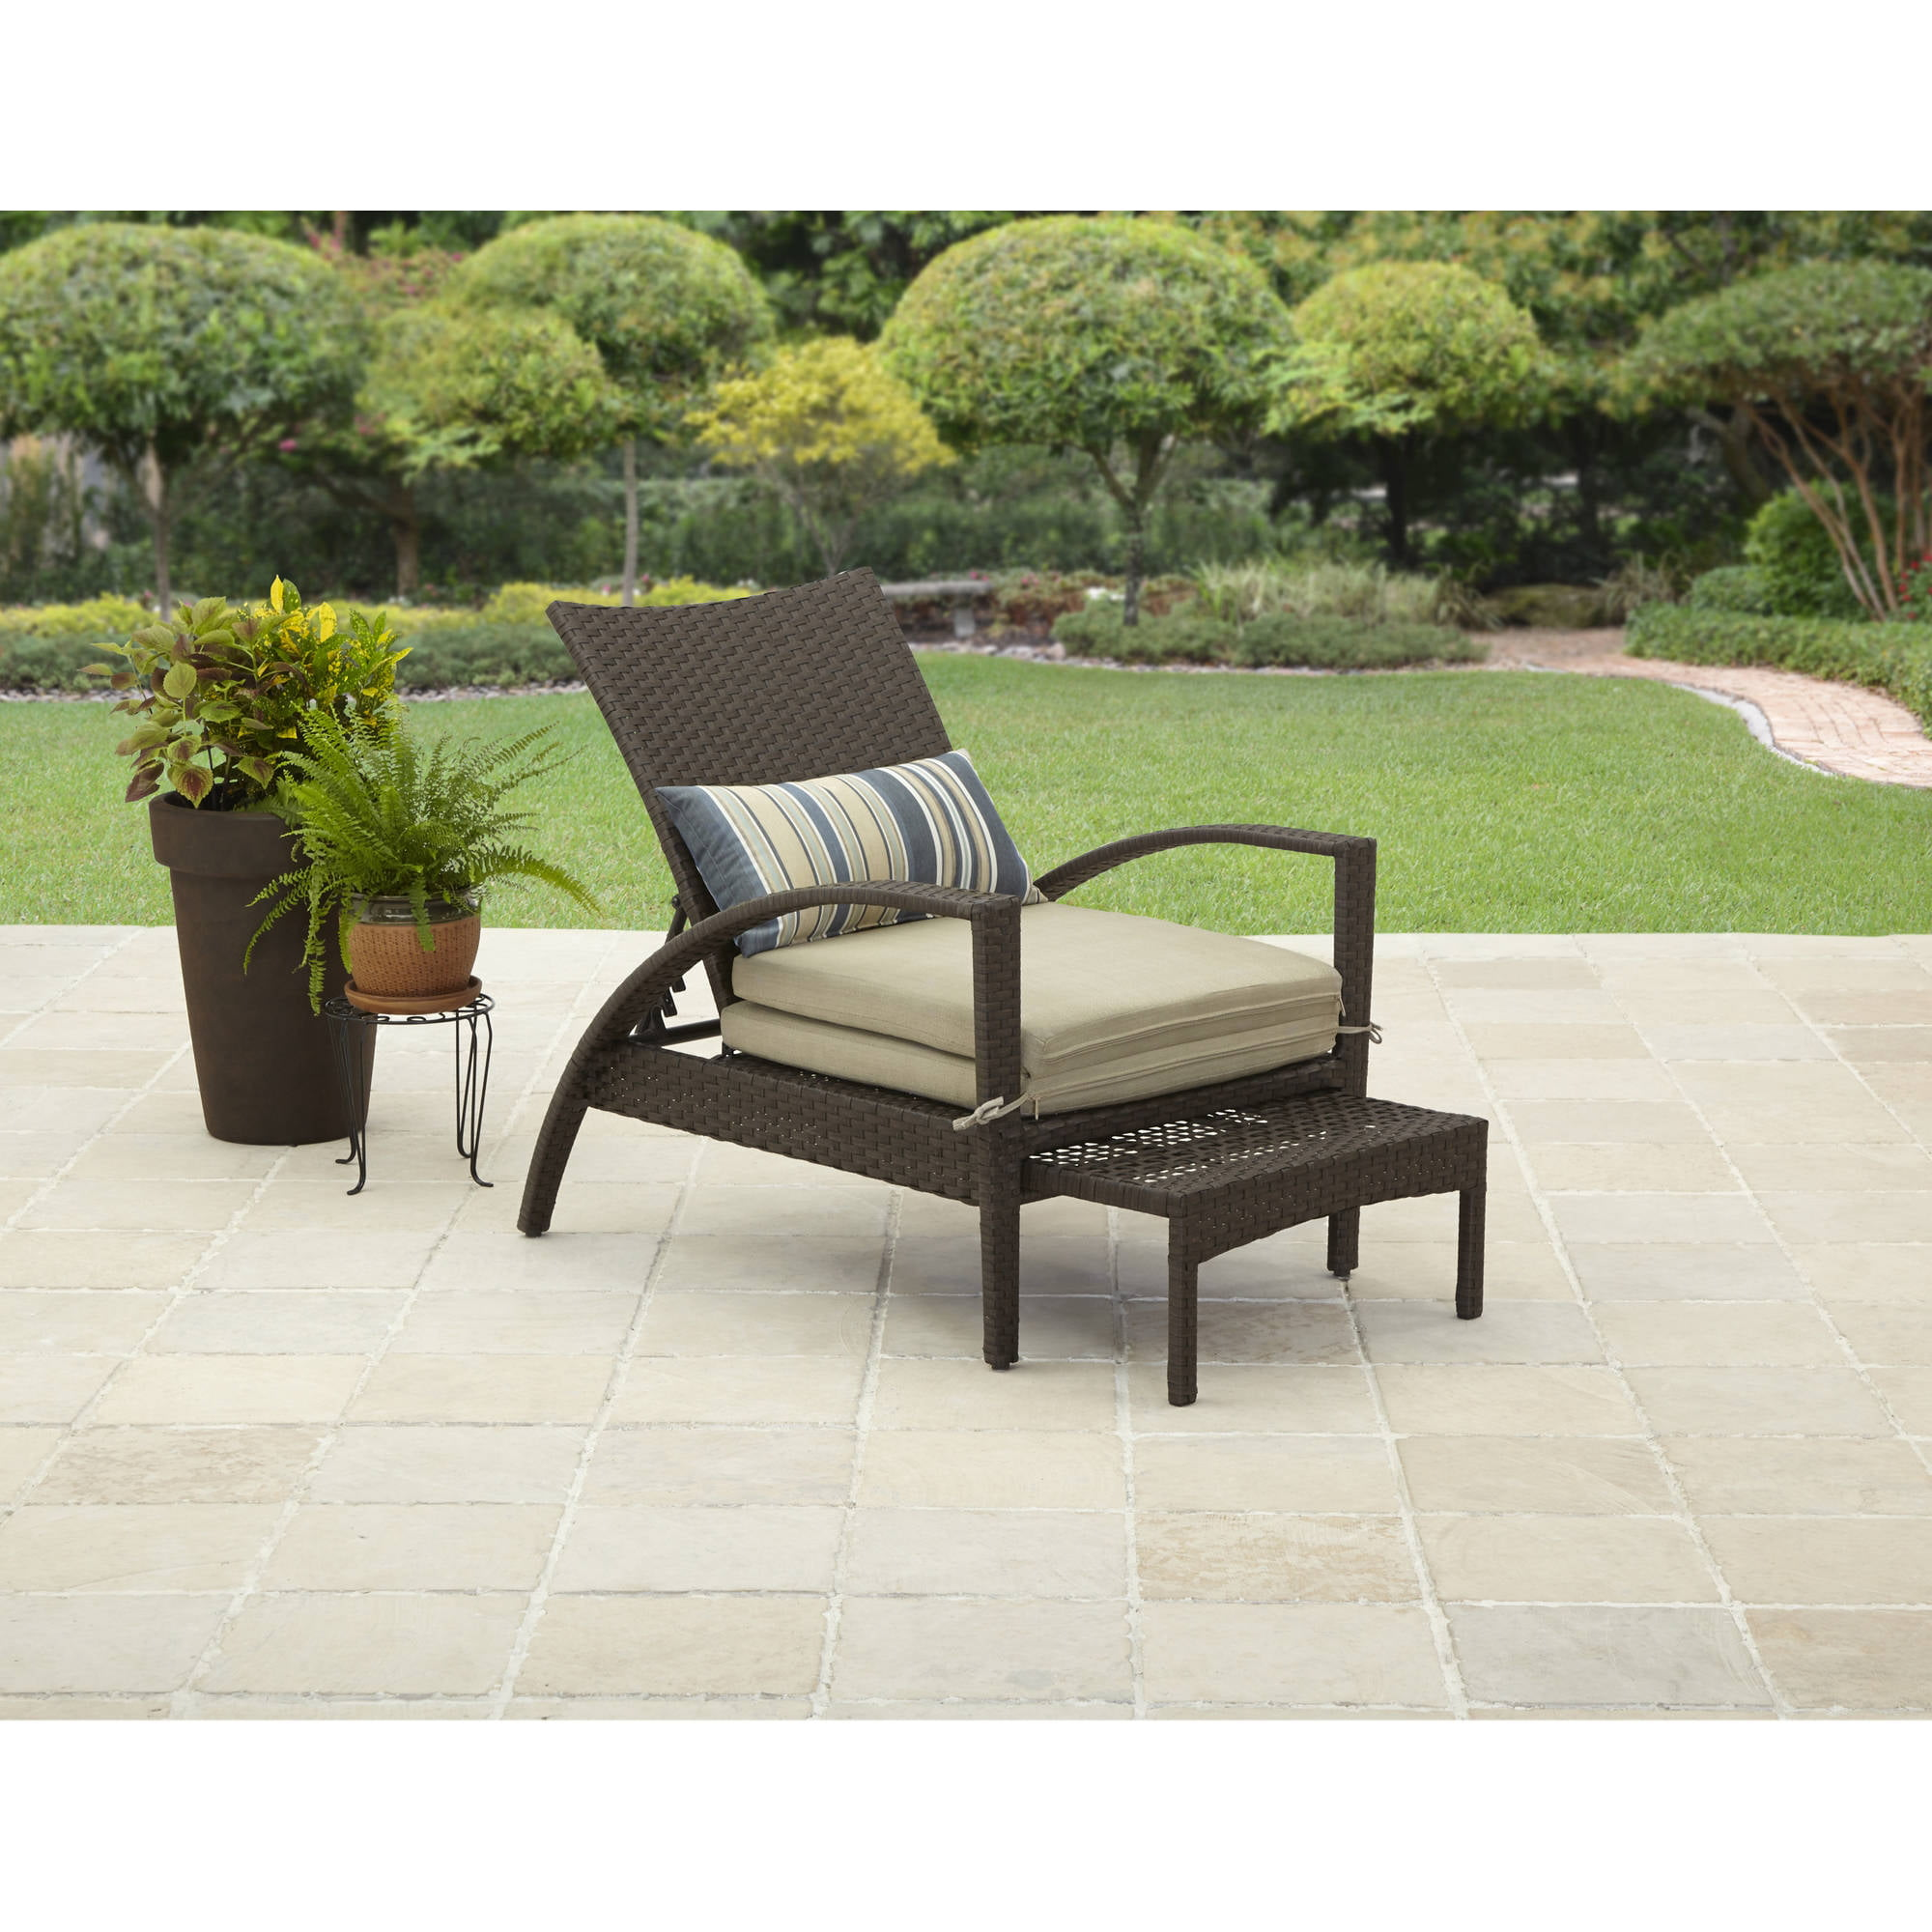 patio furniture walmartcom - Garden Furniture Loungers